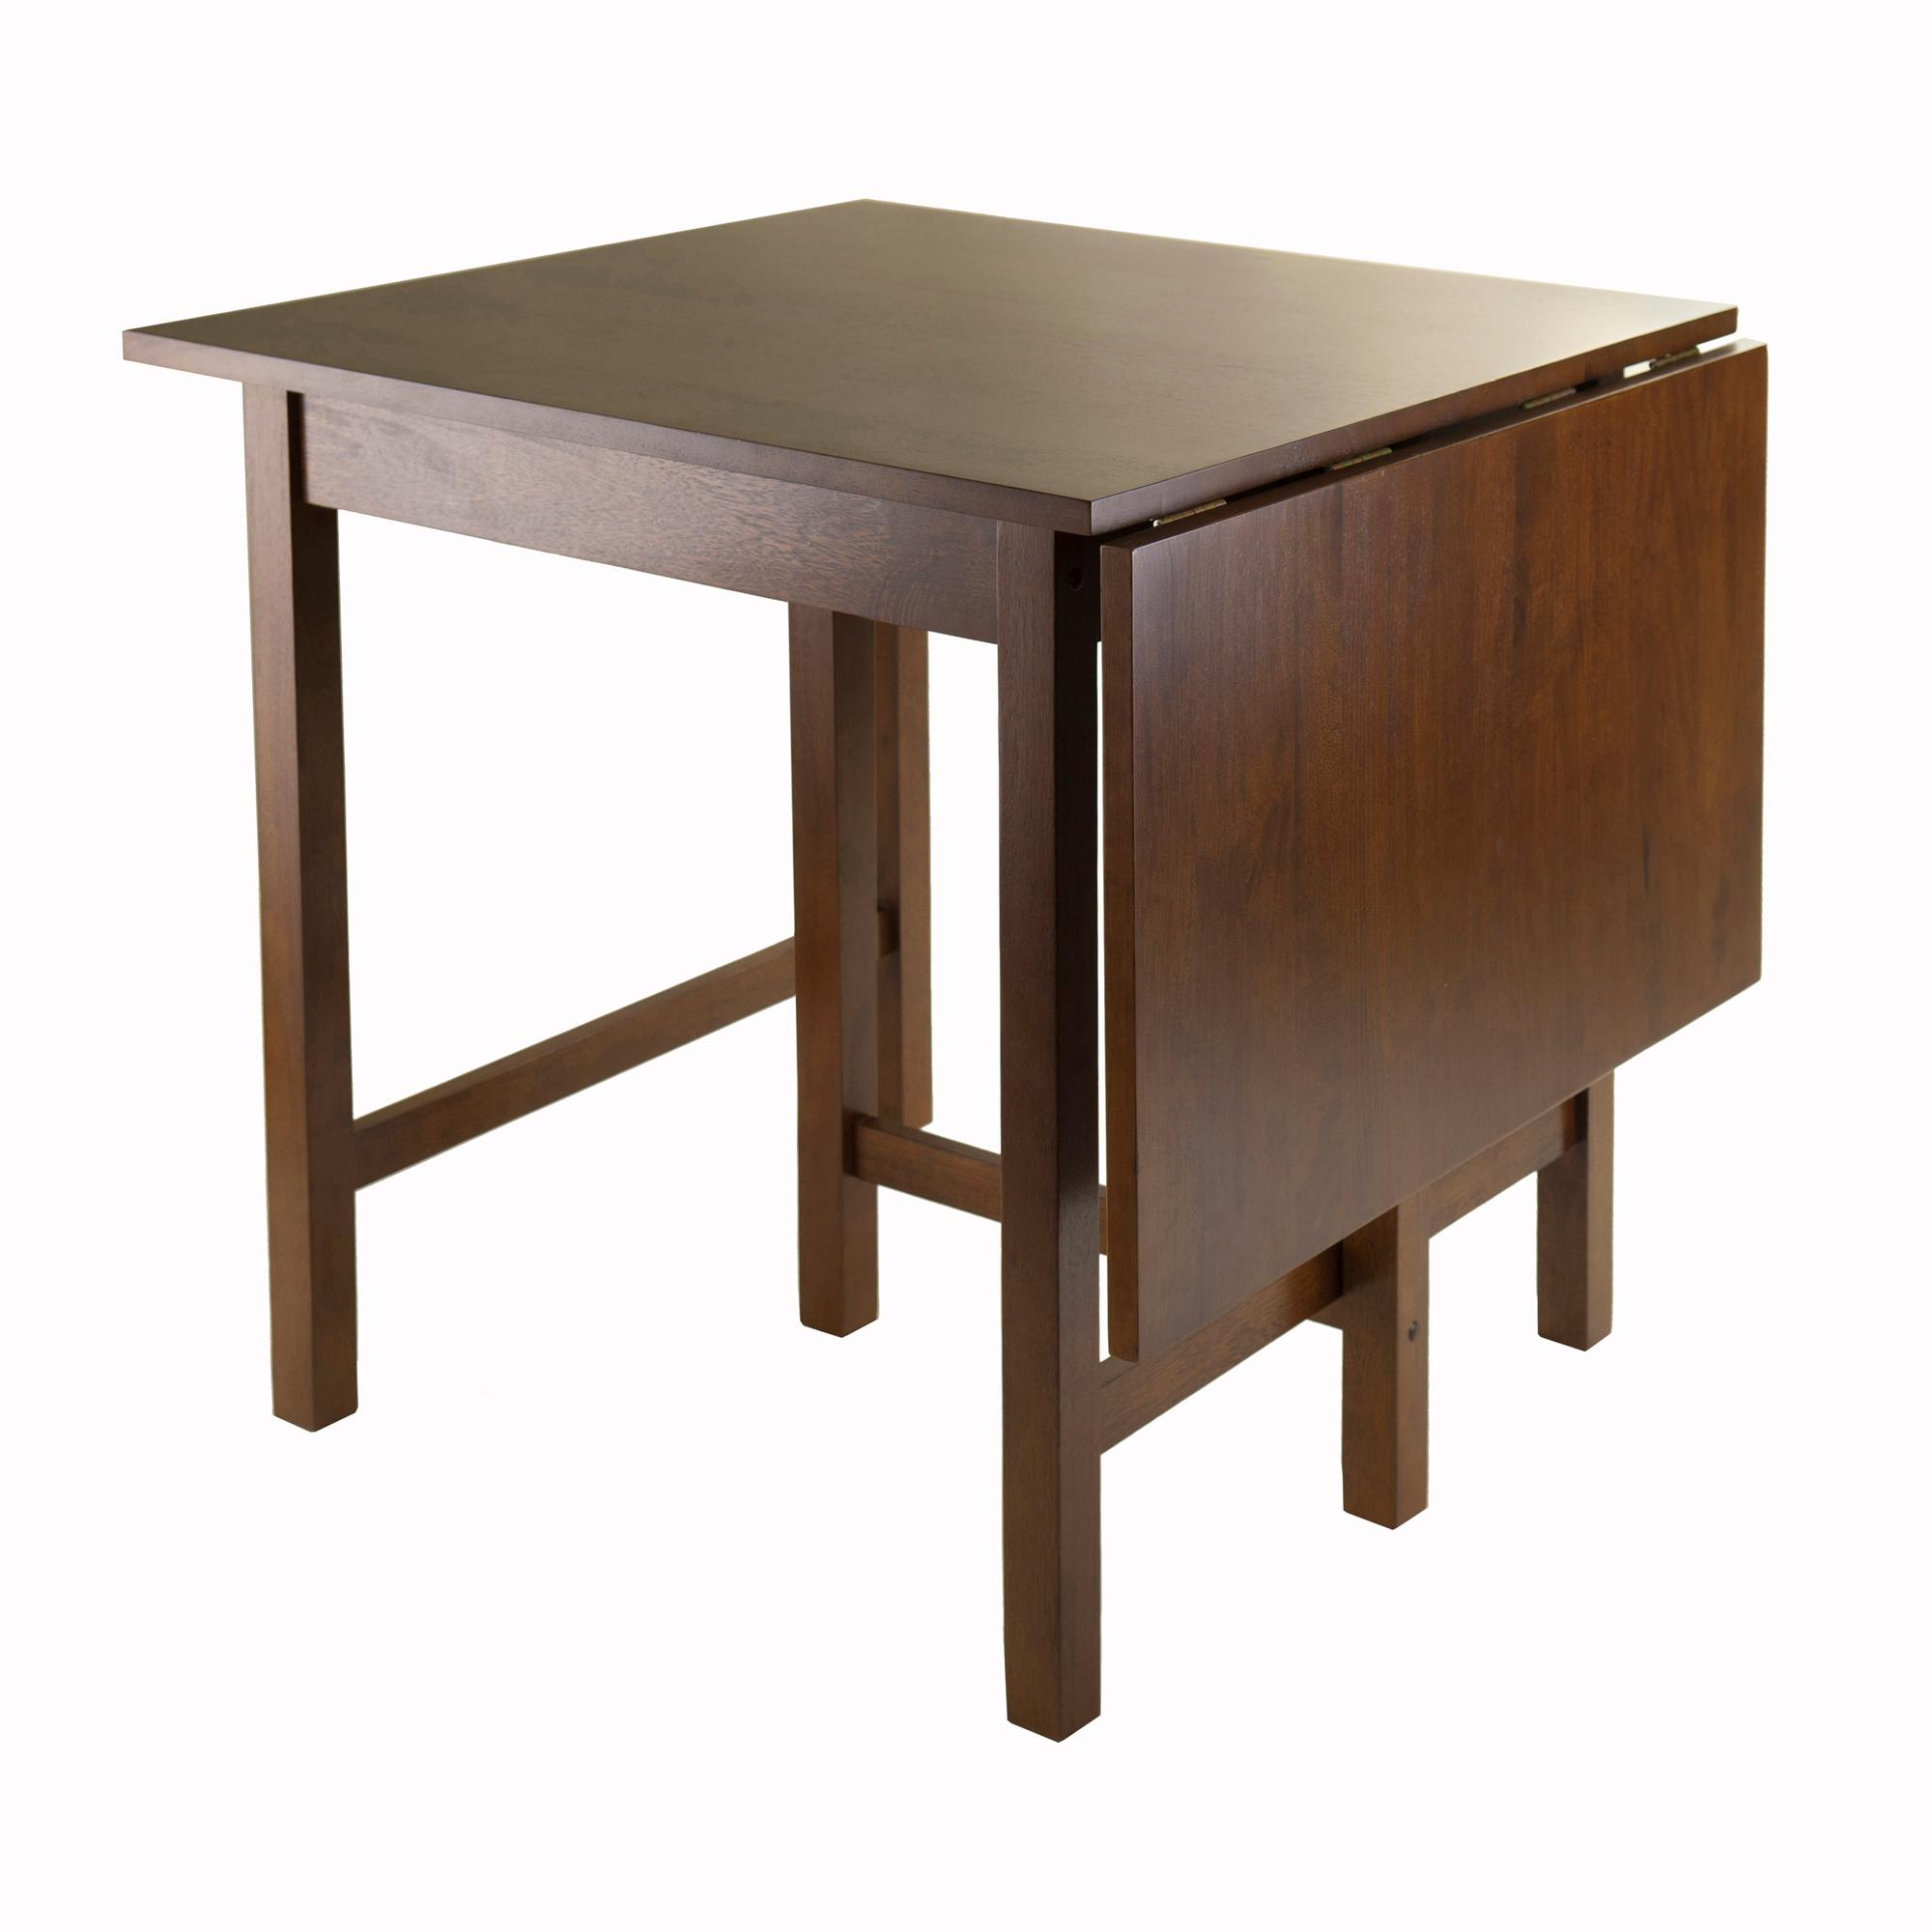 Winsome lynden drop leaf dining table tables for Drop leaf dining table